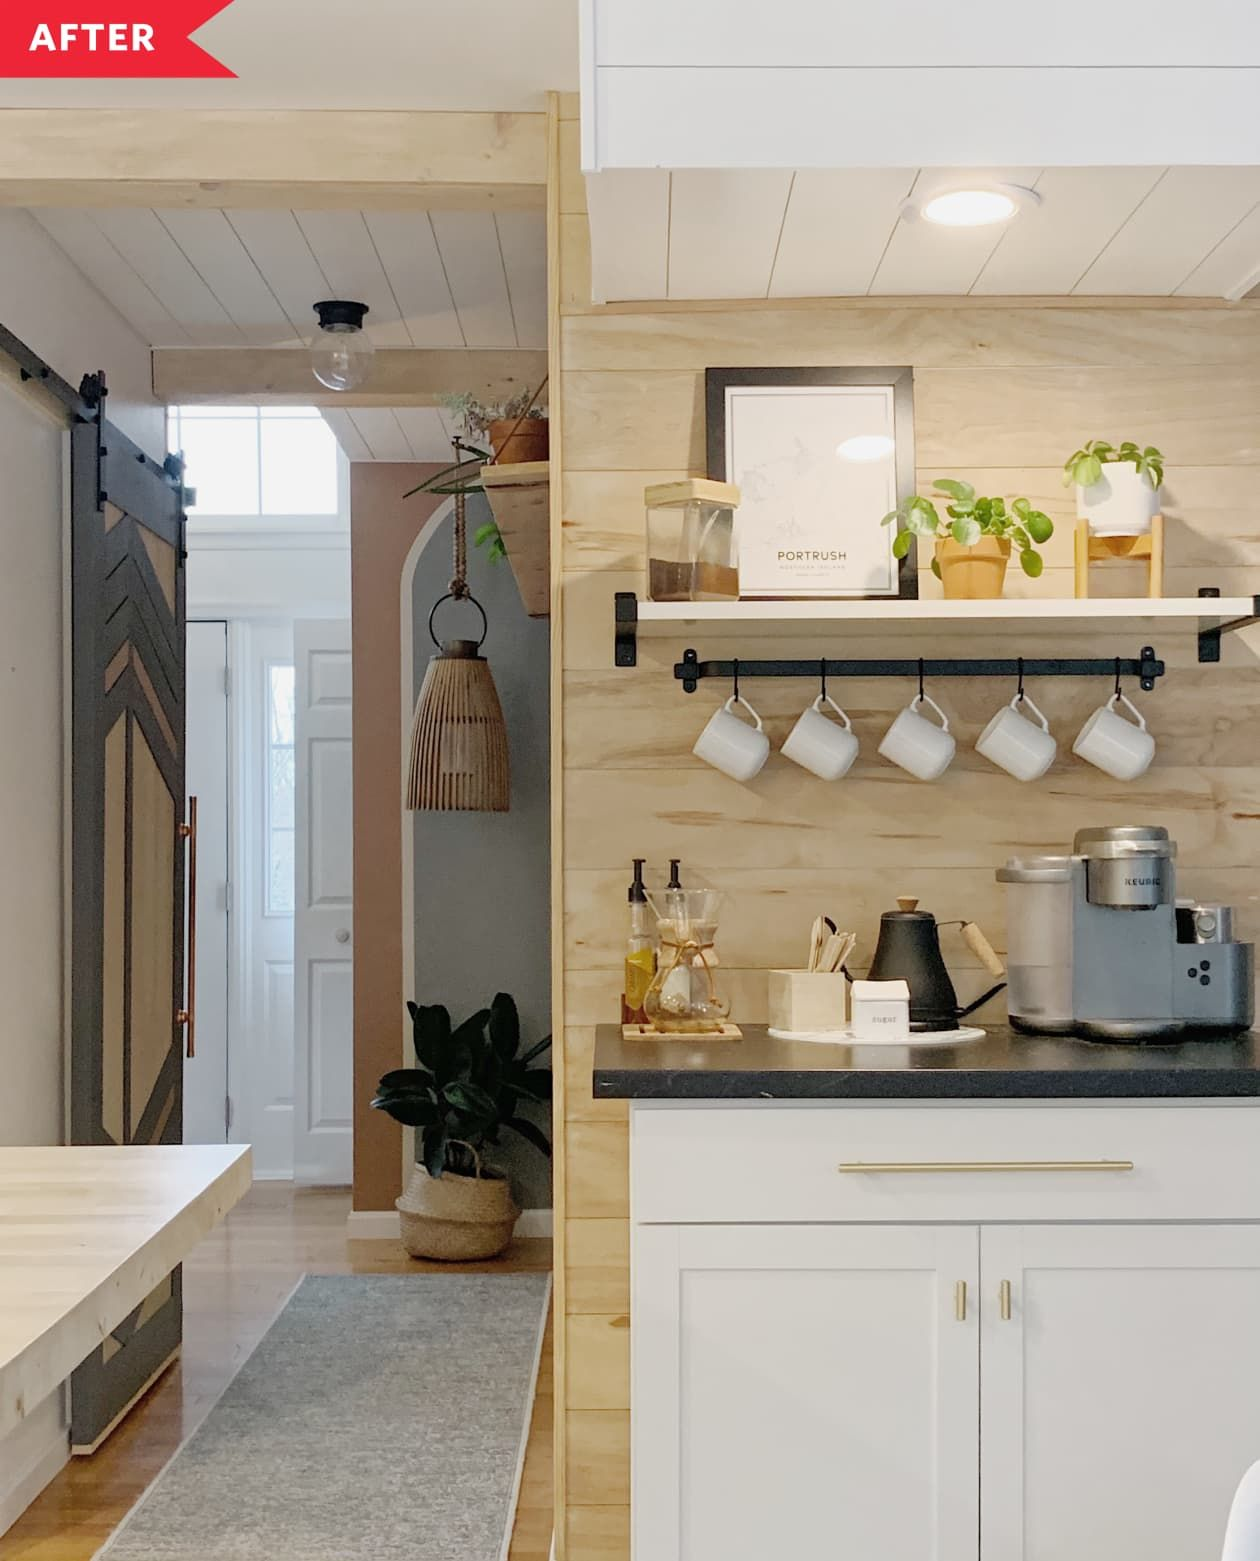 Before And After Just 2 000 Turns This 90s Kitchen Into A Scandi Boho Dream In 2020 Boho Kitchen Budget Kitchen Remodel Kitchen Remodel